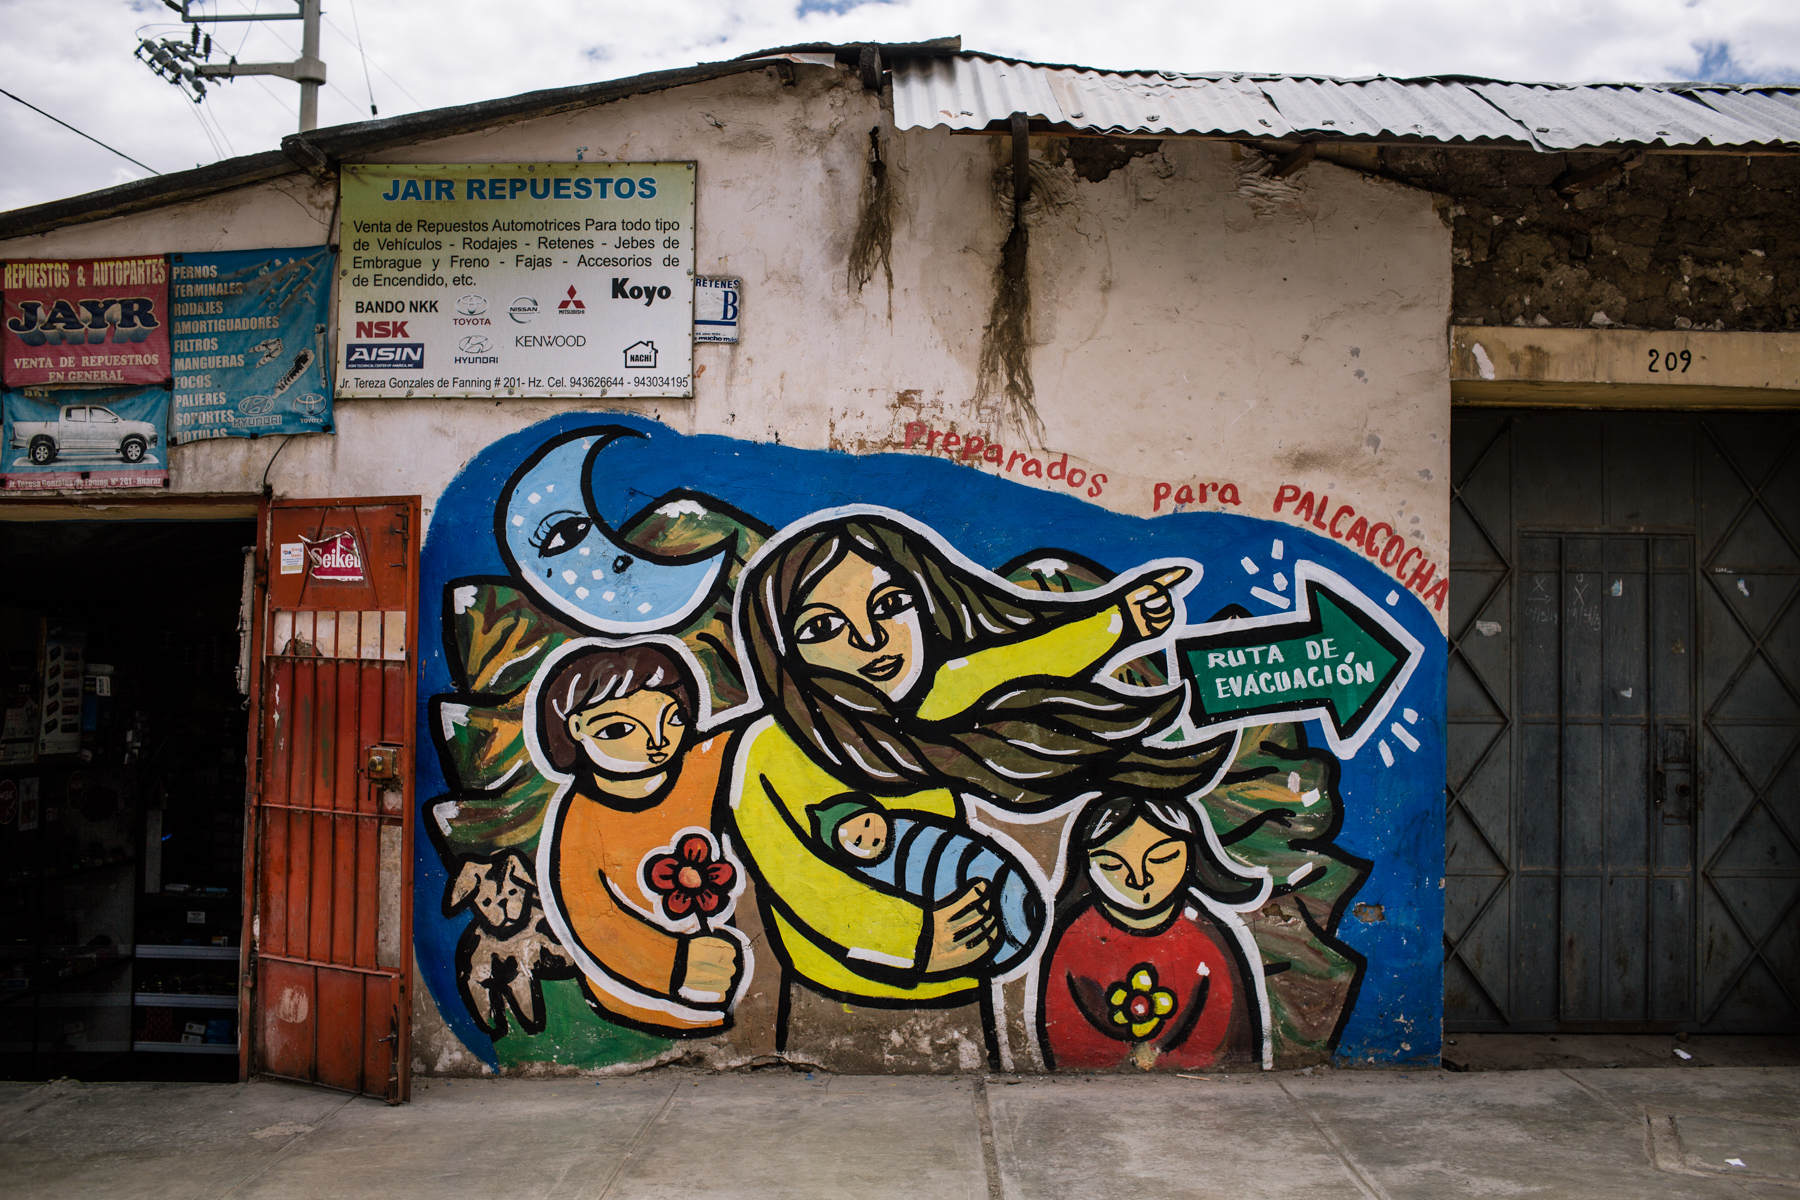 In 2013, the ministry of environment hired a group of artists from Lima to create a serie of mural paintings indicating the escape routes in case of flood. Much remains to do as there is currently no siren system, no precise plan of the dangerous areas, no trainings and no precise information to the exposed populations.